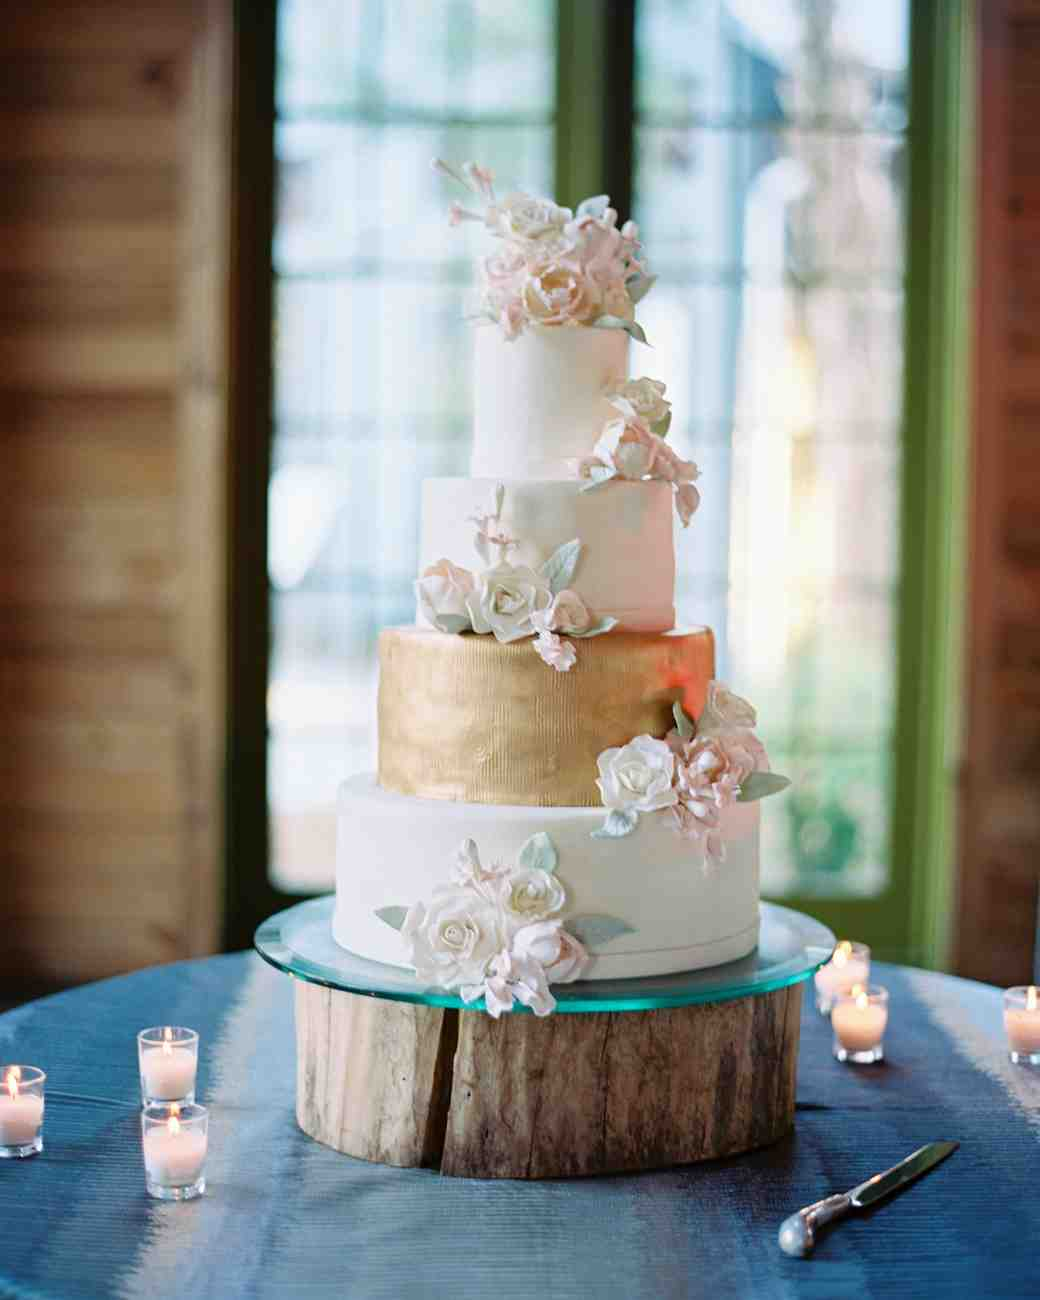 Gumpaste Flowers For Wedding Cakes: Wedding Cakes With Sugar Flowers That Look Incredibly Real